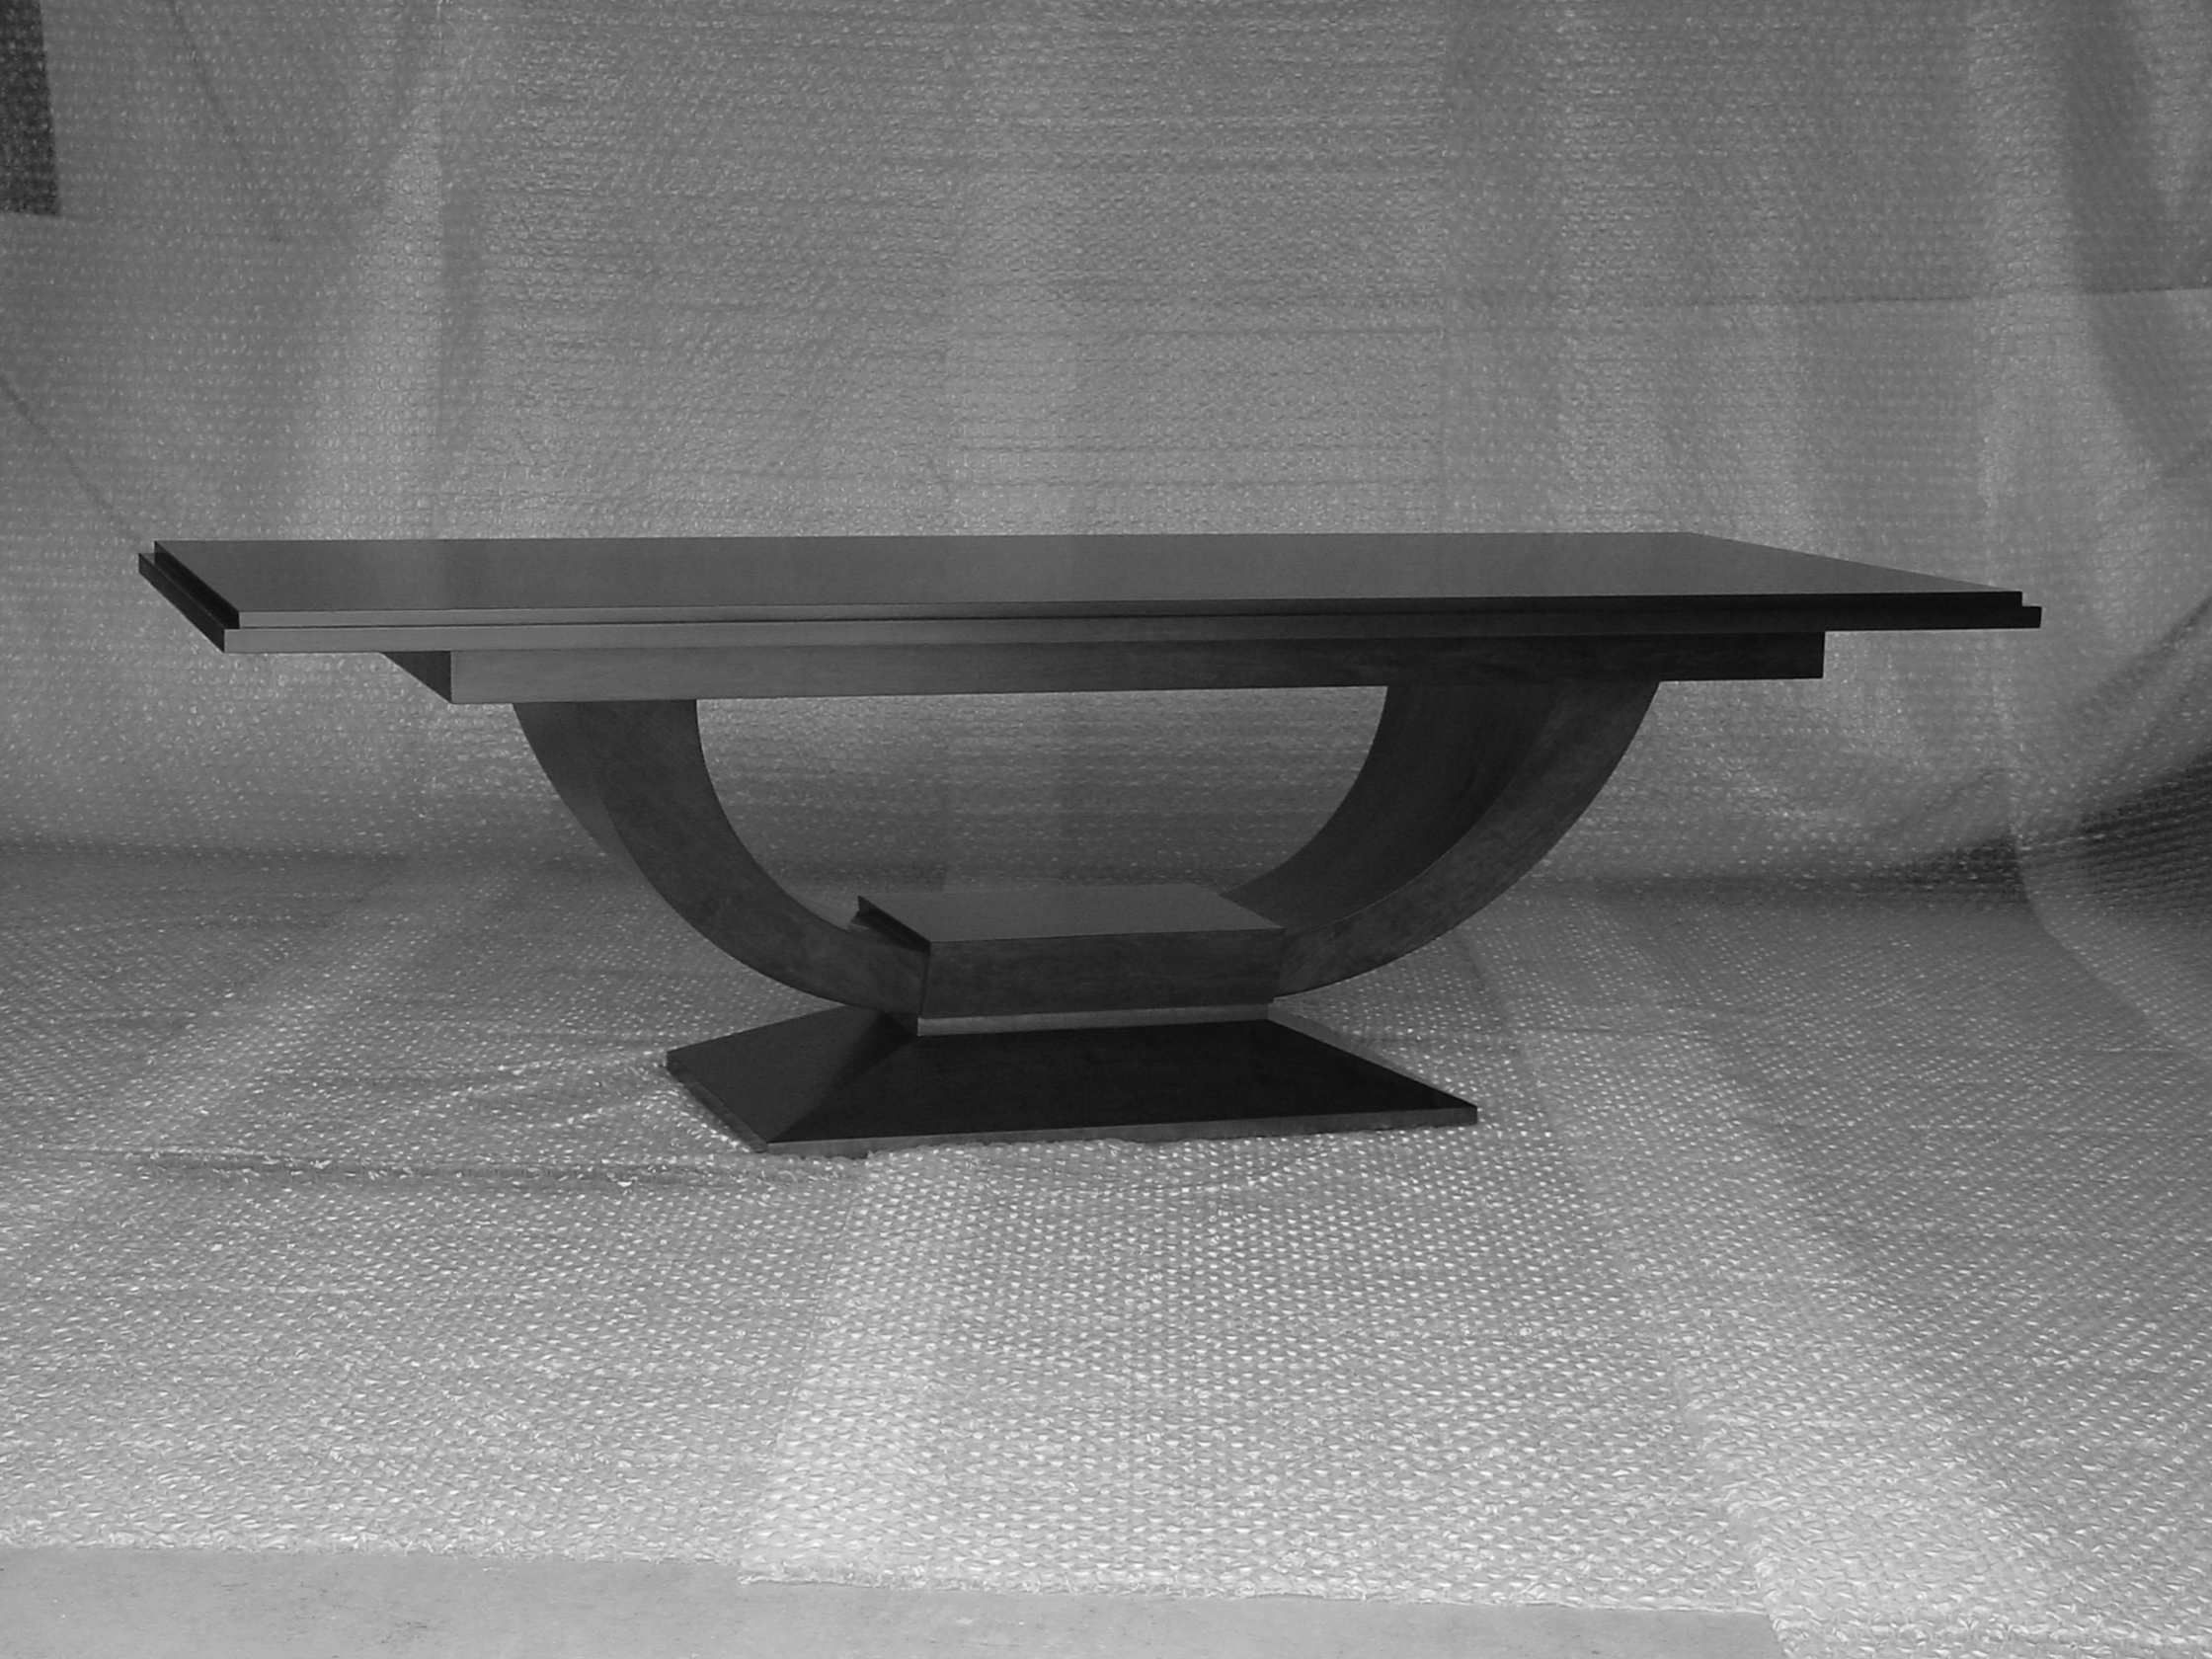 table-BW.jpg